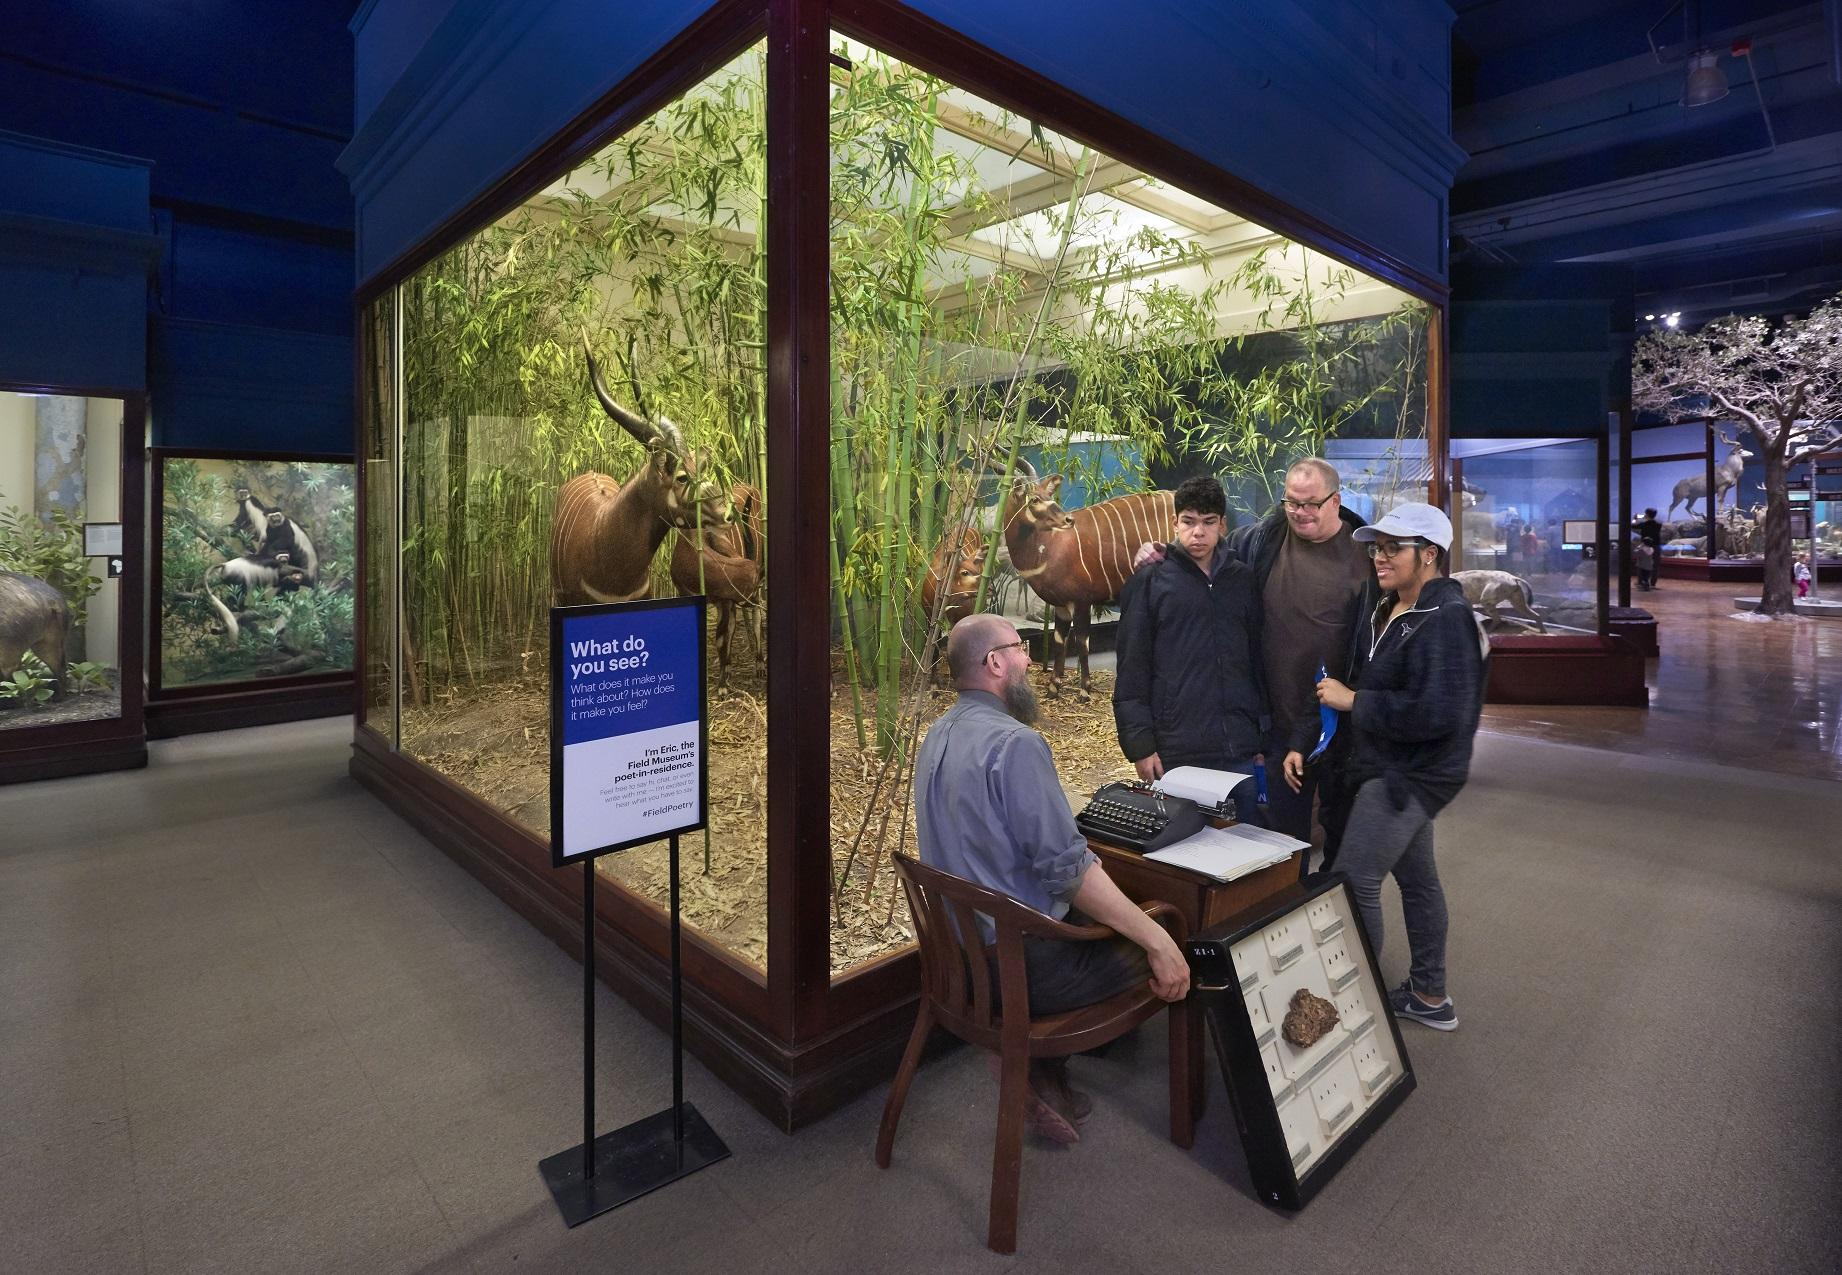 Eric Elshtain interacts with guests in front of dioramas at the Field Museum. (John Weinstein / The Field Museum)